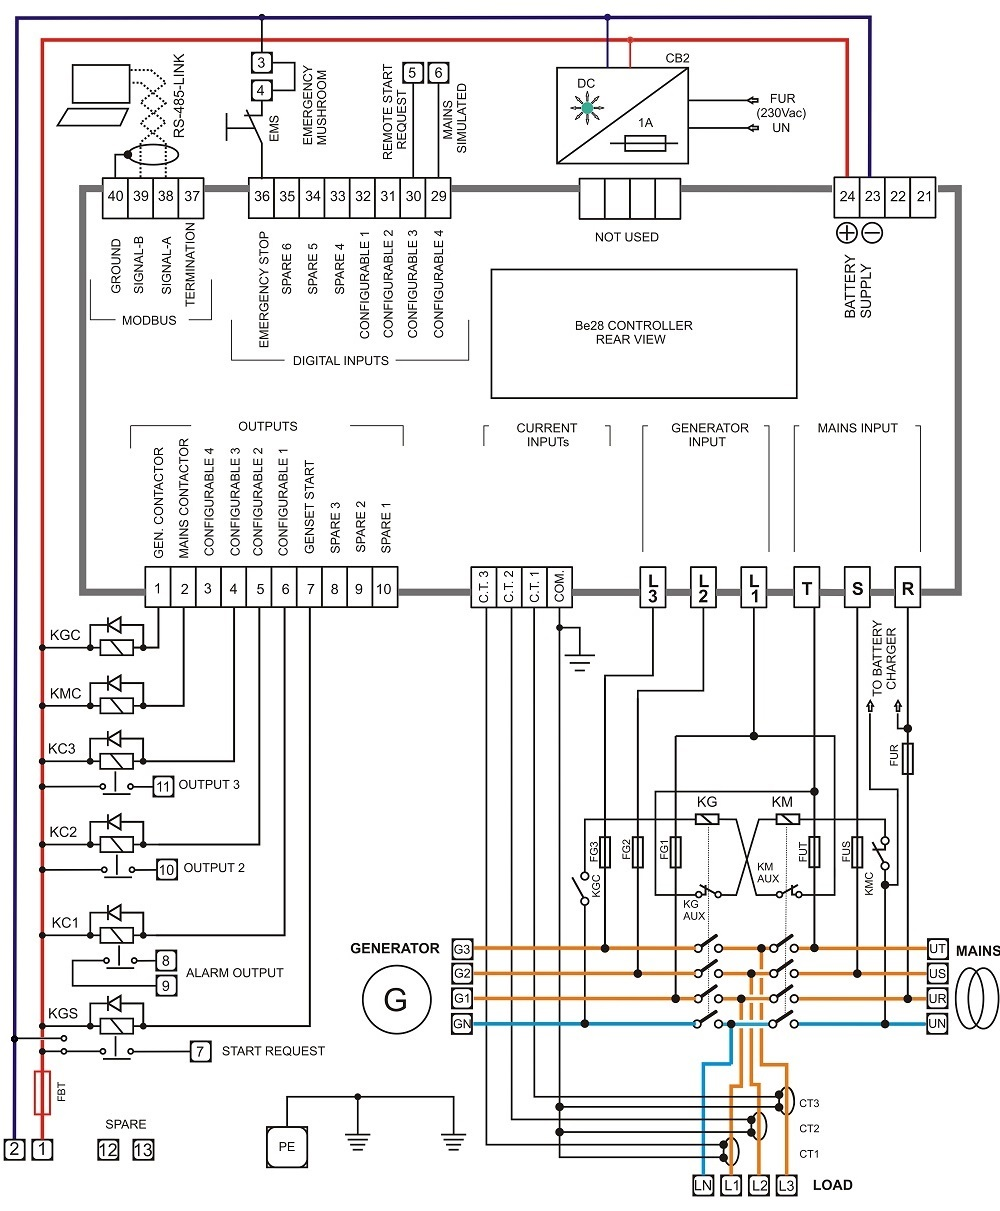 ats panel wiring diagram data wiring diagrams u2022 rh naopak co wiring diagram panel ats amf pdf wiring diagram panel ats dan amf